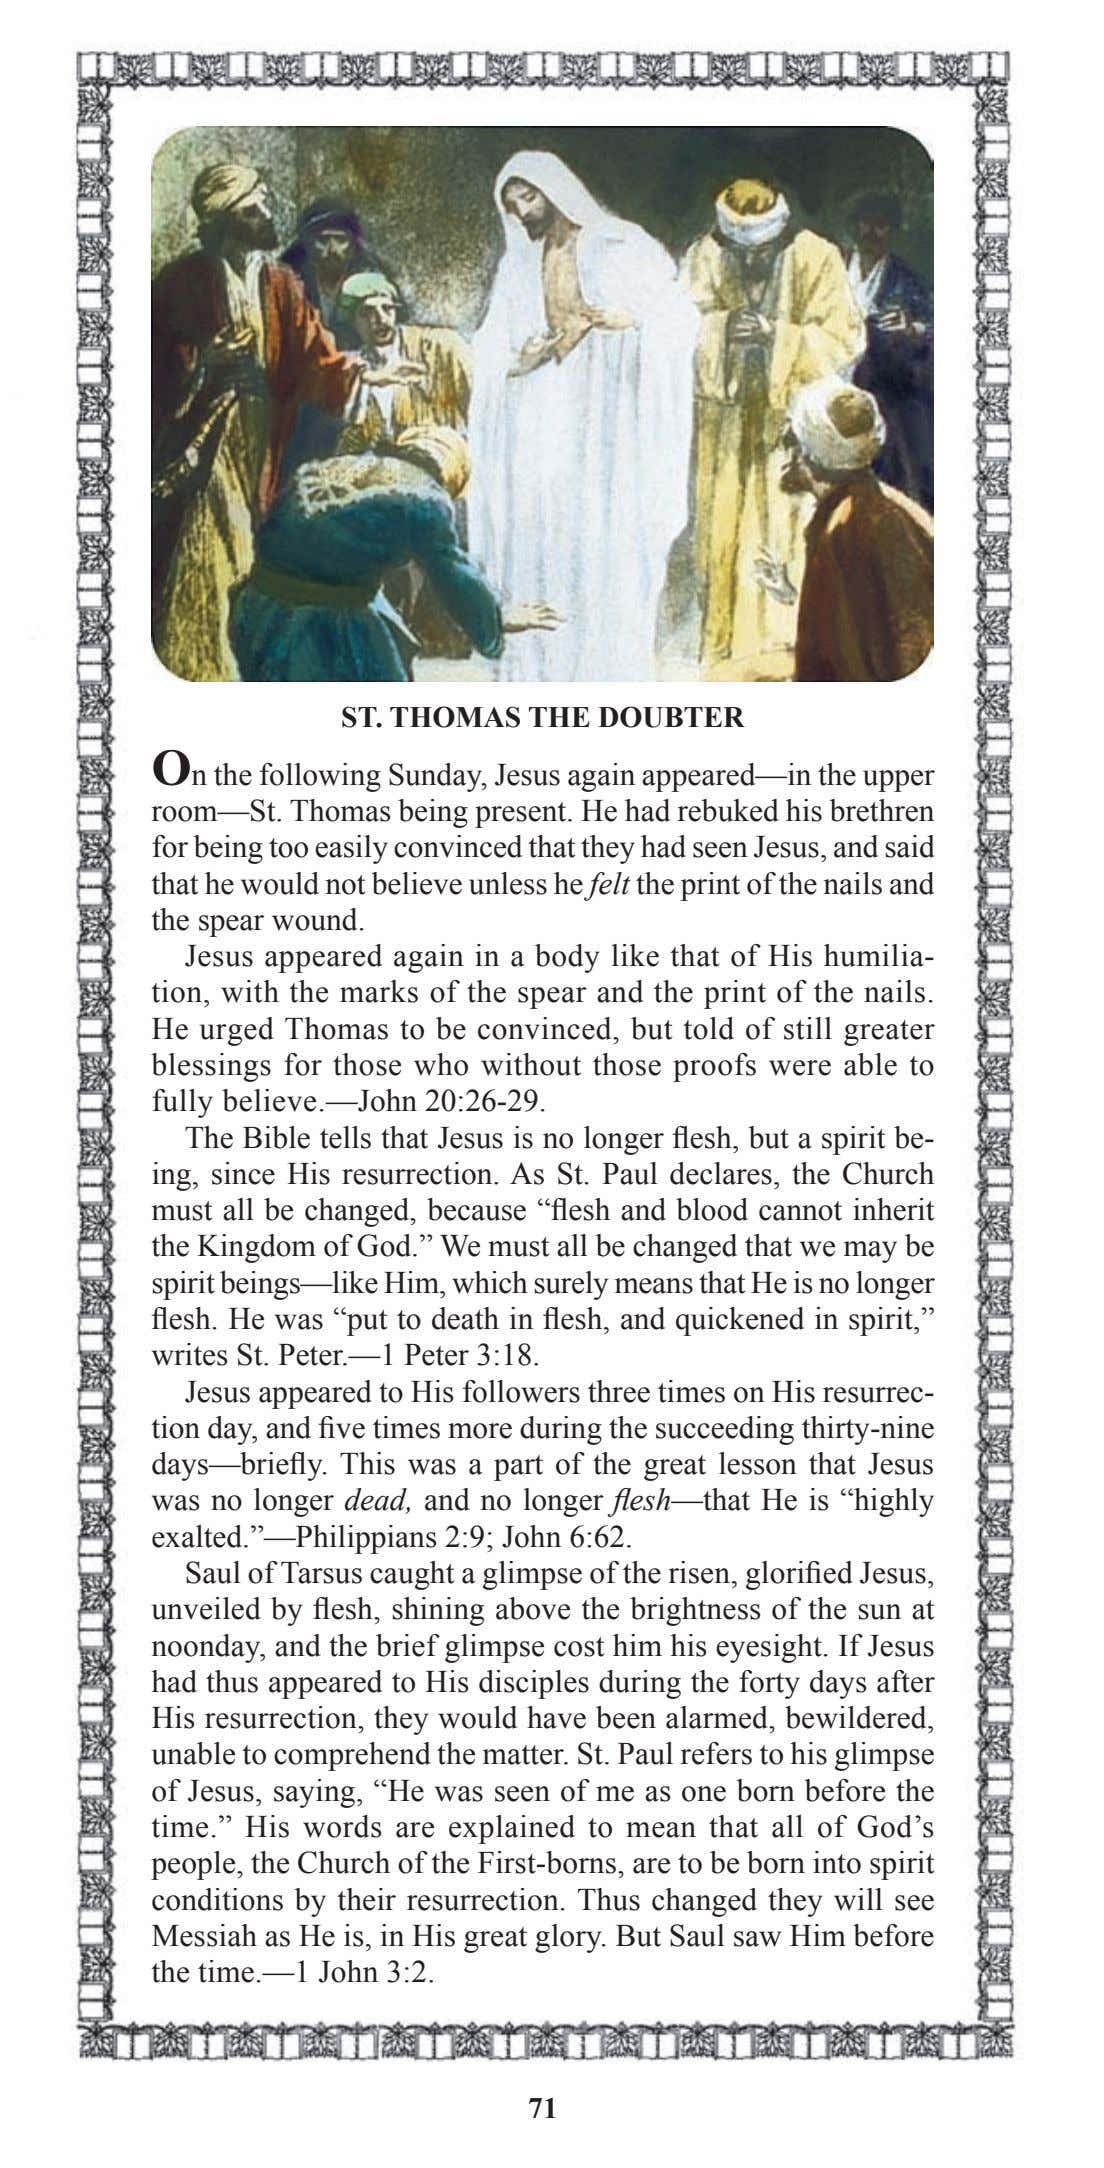 ST. THOMAS THE DOUBTER On the following Sunday, Jesus again appeared—in the upper room—St. Thomas